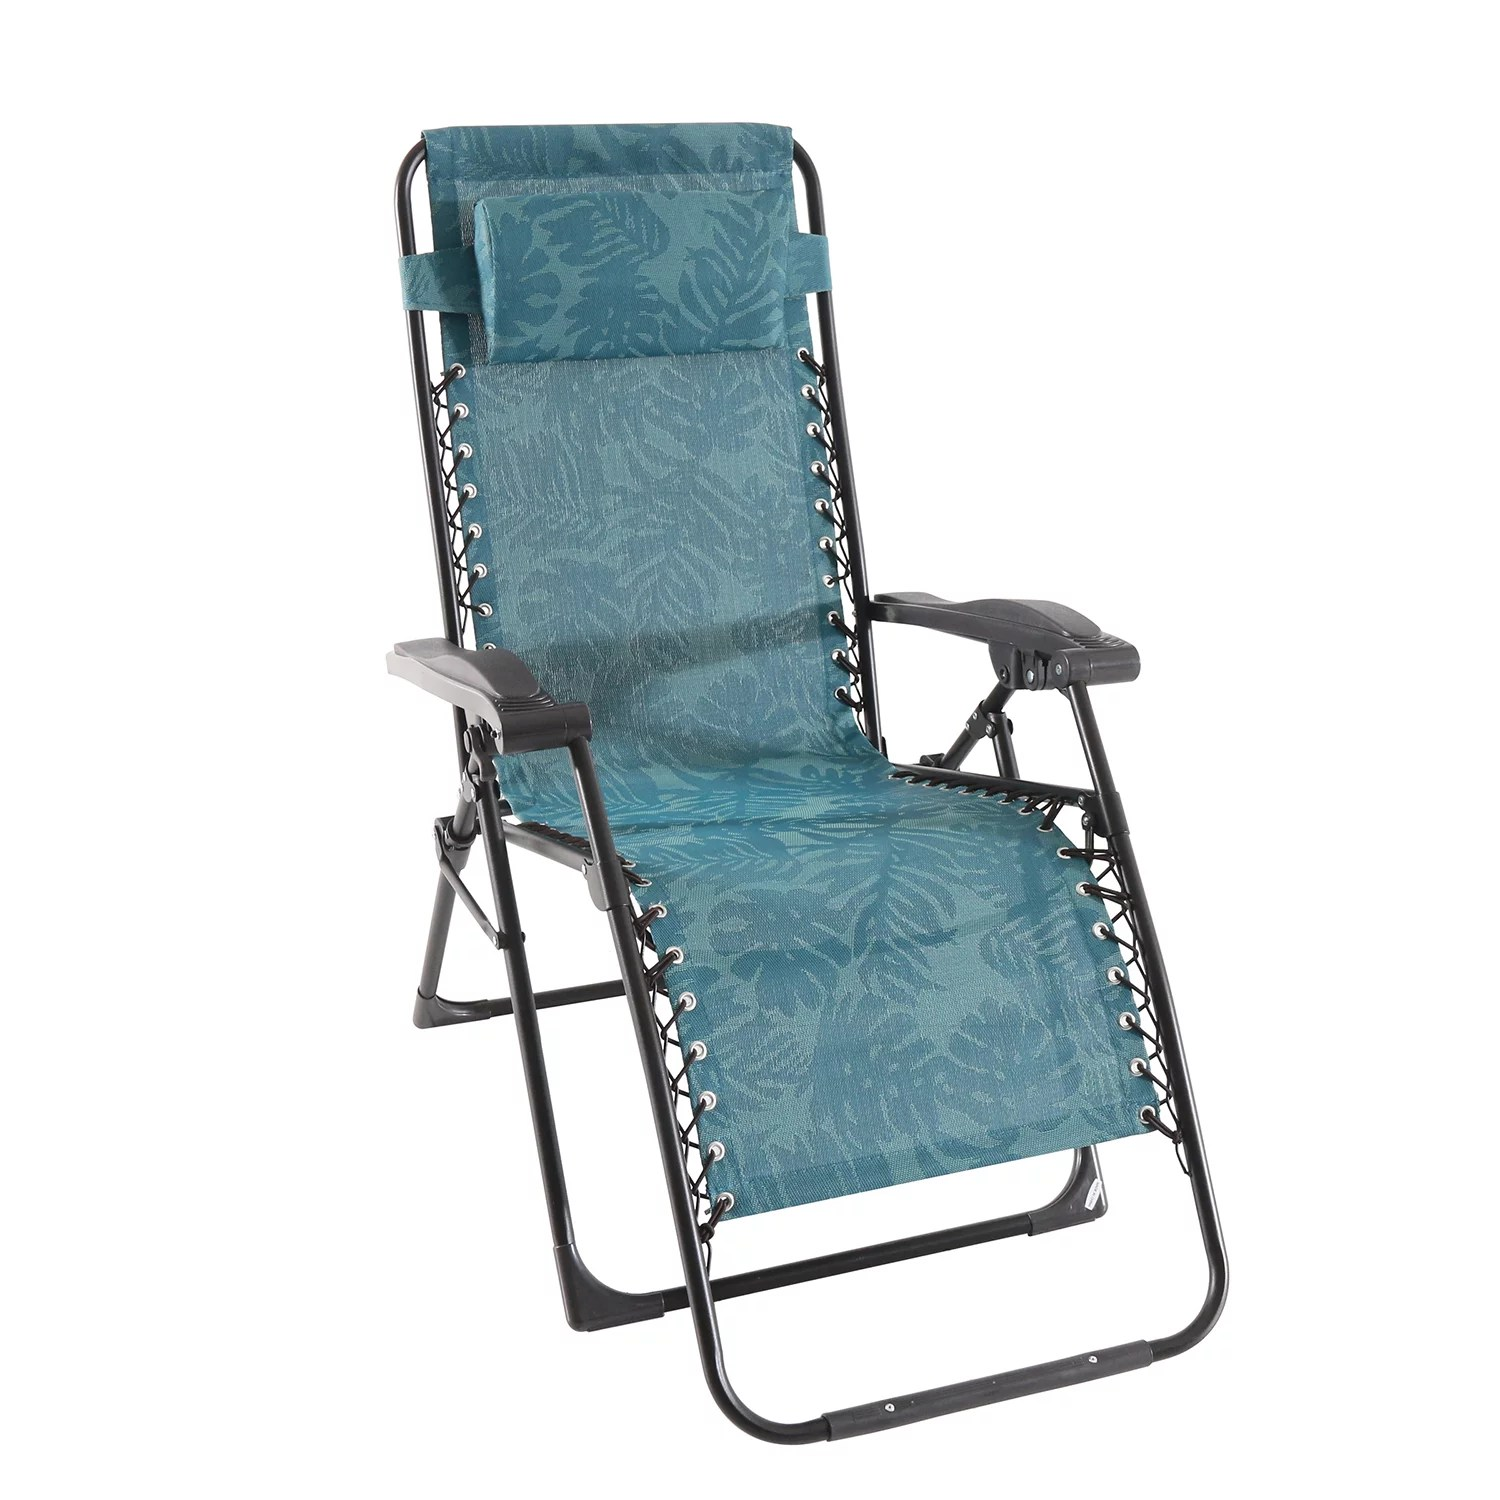 sonoma anti gravity chair review covers venues goods for life patio antigravity